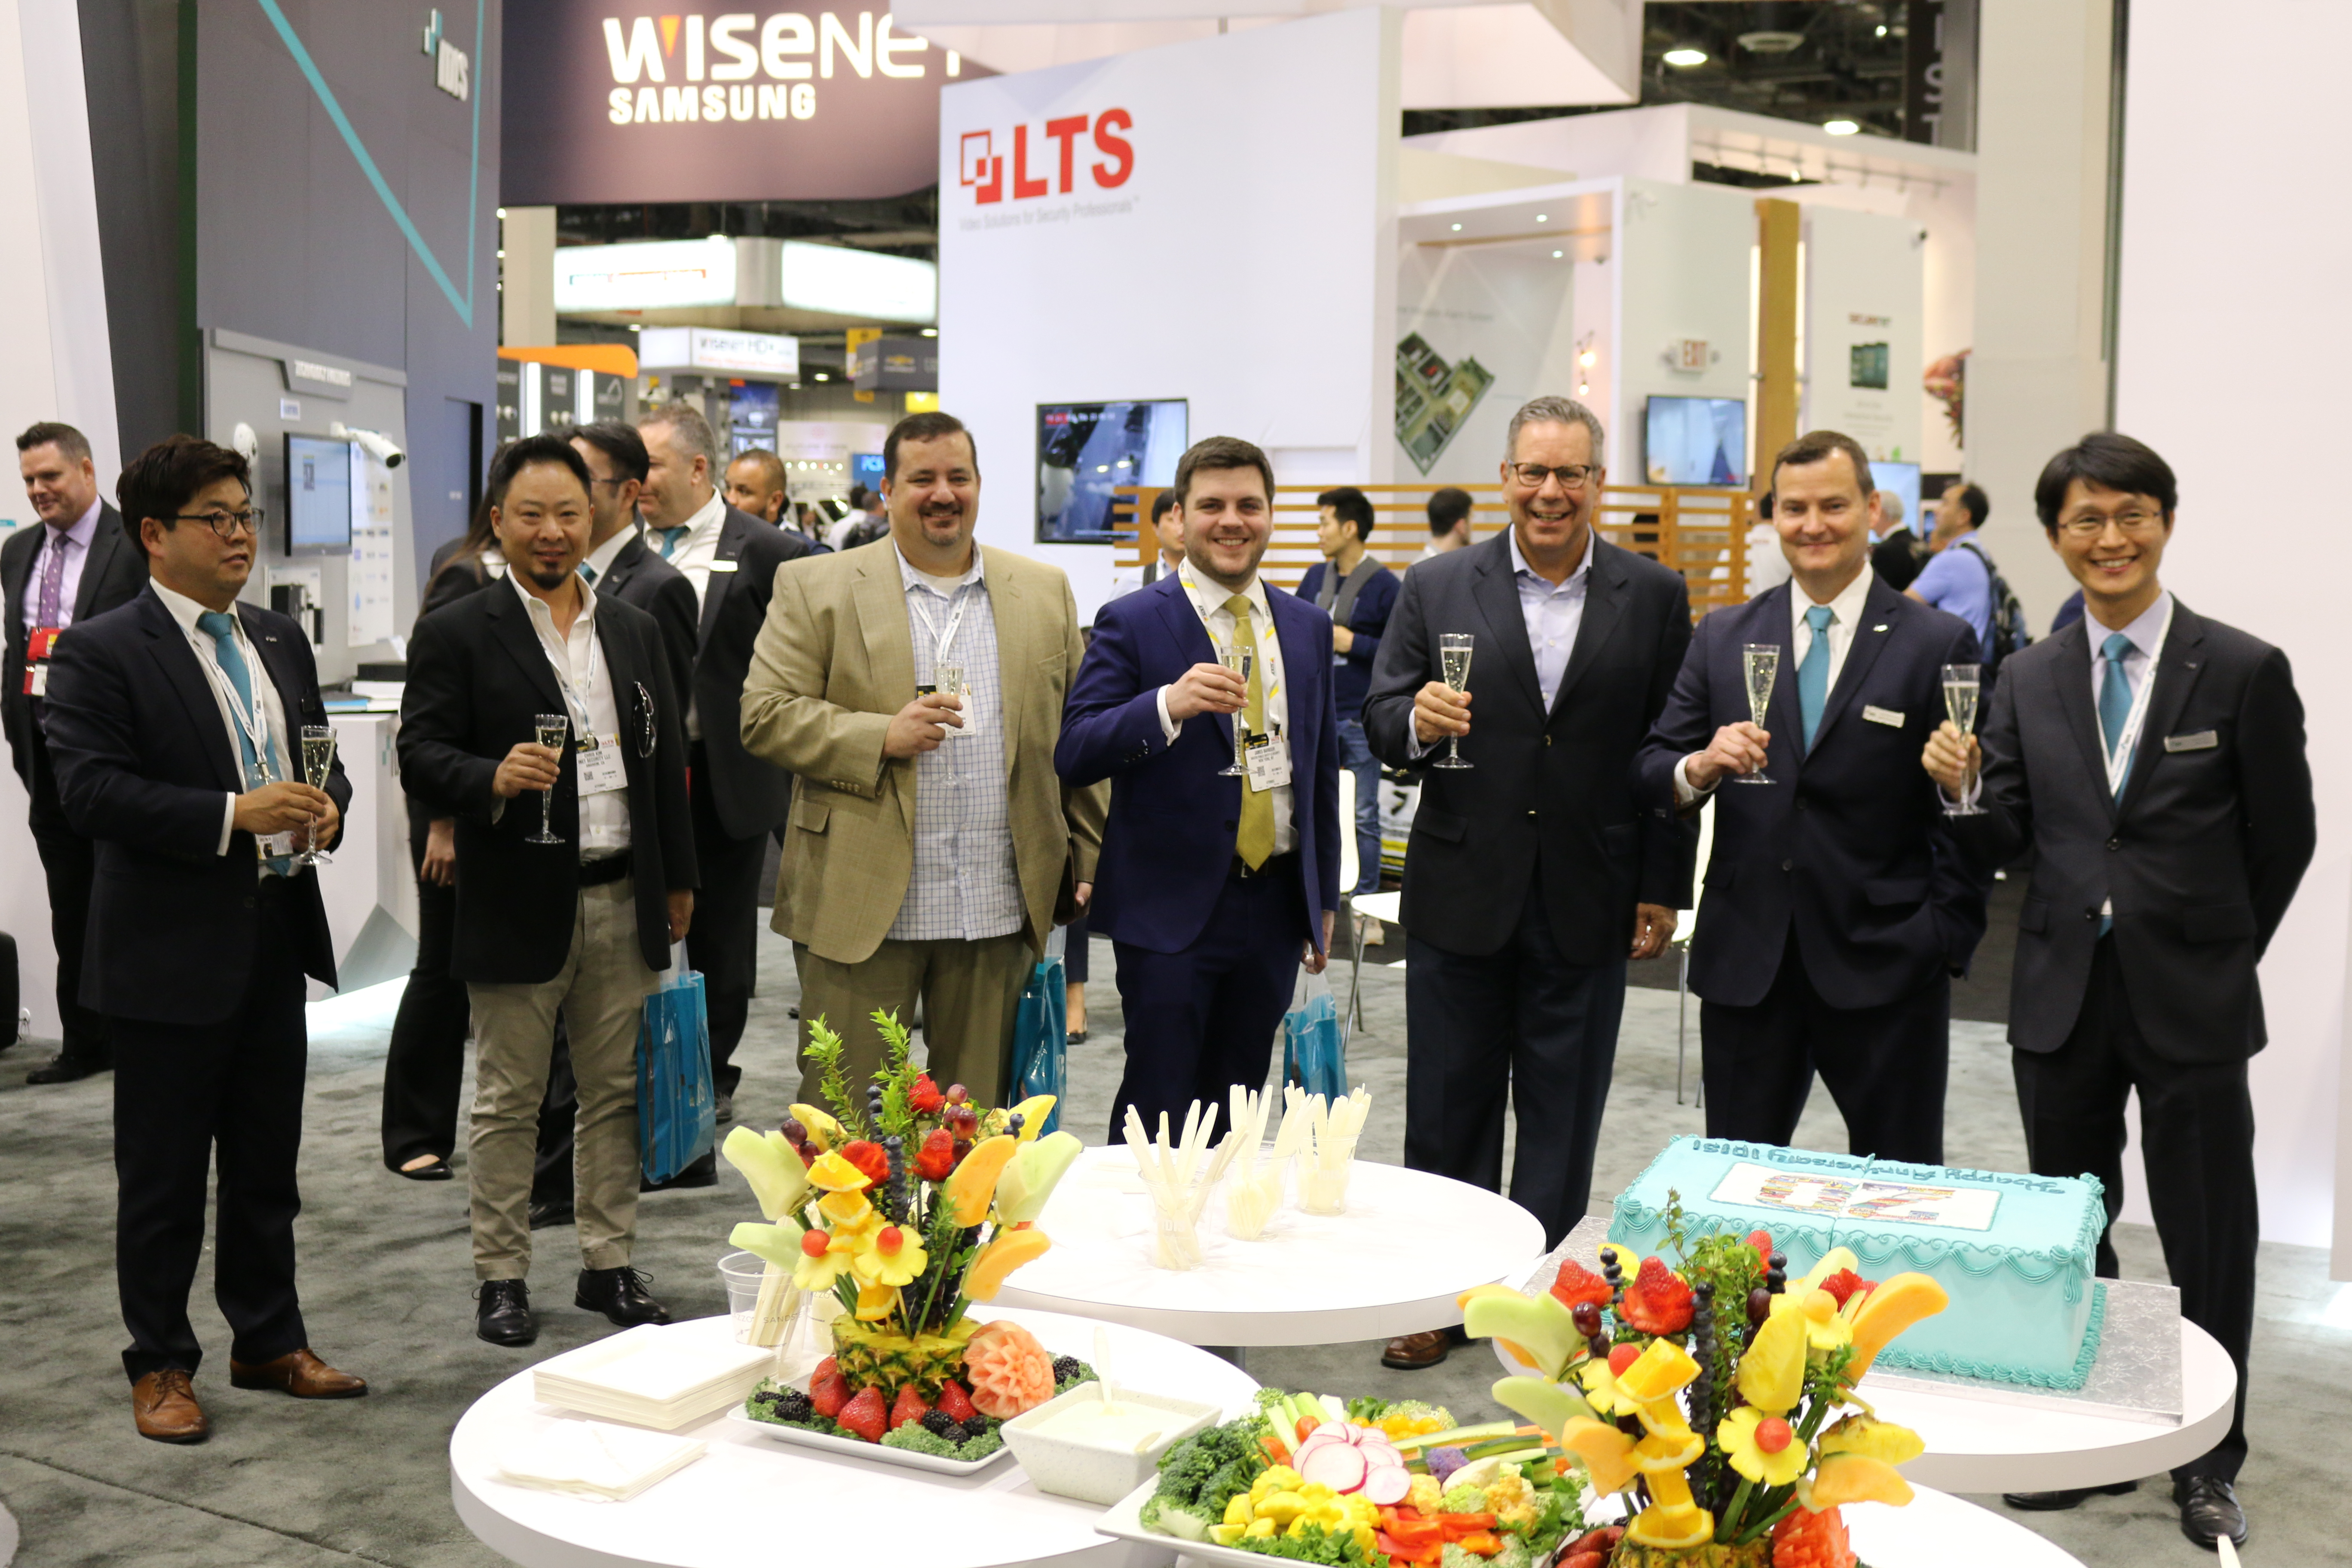 IDIS co-founder and president Dr. Albert Ryu (r.) celebrates the company's 20th Anniversary with IDIS America executives and honored partners and customers at the IDIS 2017 ISC West show in Las Vegas, NV. (Photo: Business Wire)